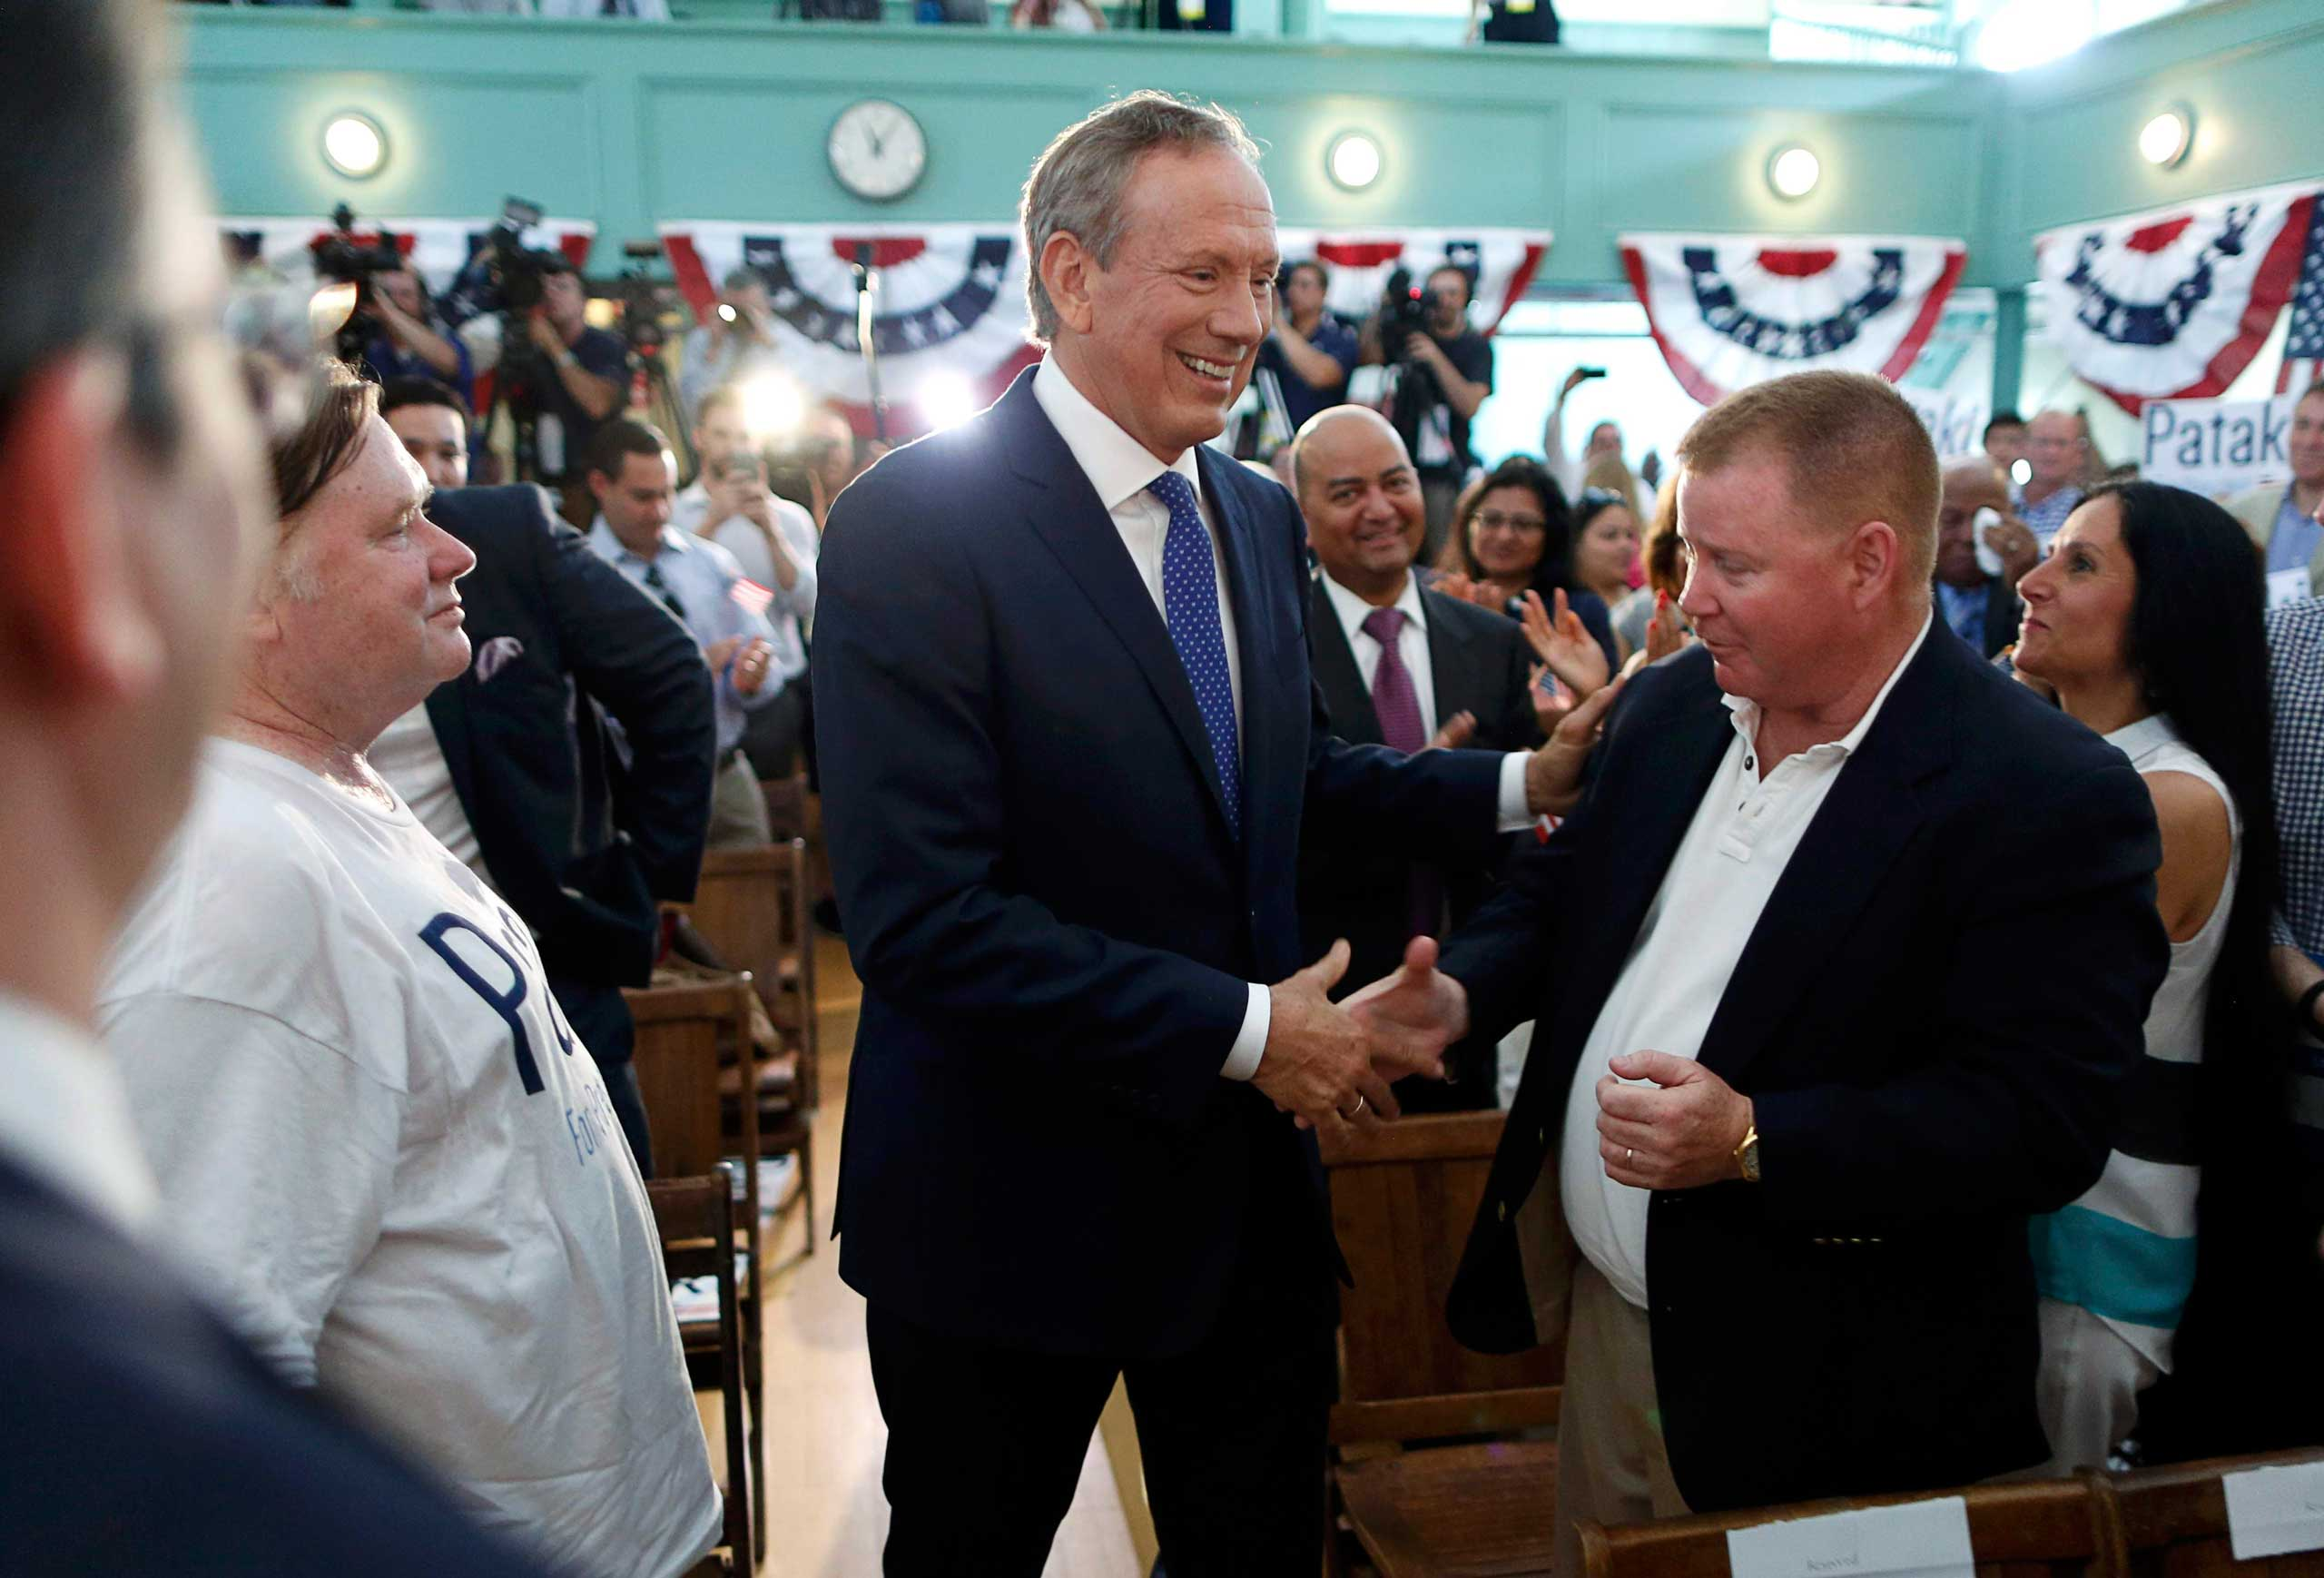 Republican presidential candidate and former New York Governor George Pataki (C) greets supporters after formally announcing his candidacy for the 2016 Republican presidential nomination in Exeter, N.H. on May 28, 2015.